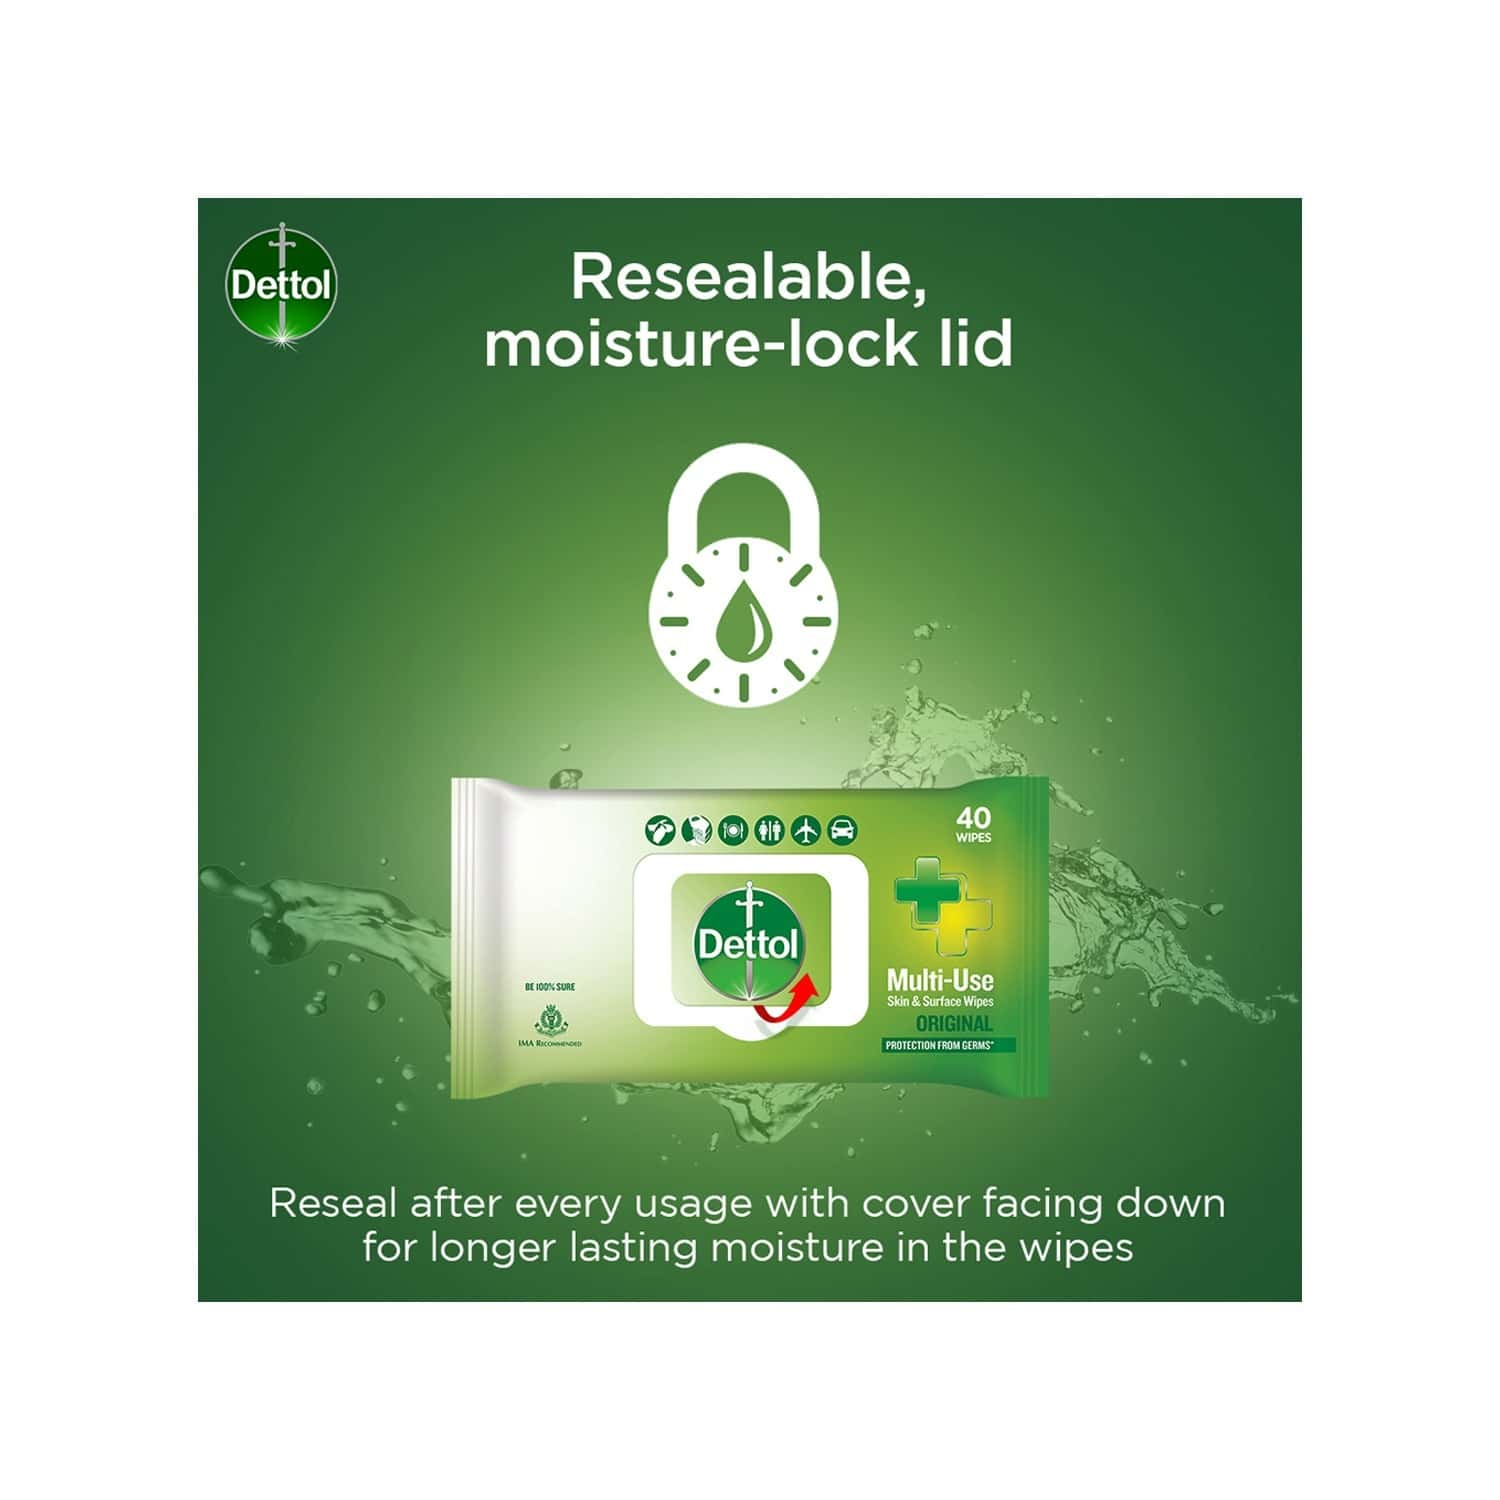 Dettol Disinfectant Skin & Surface Wipes, Original, Safe On Skin, Ideal To Clean Multiple Surfaces, Resealable Lock - Lid - 40 Count